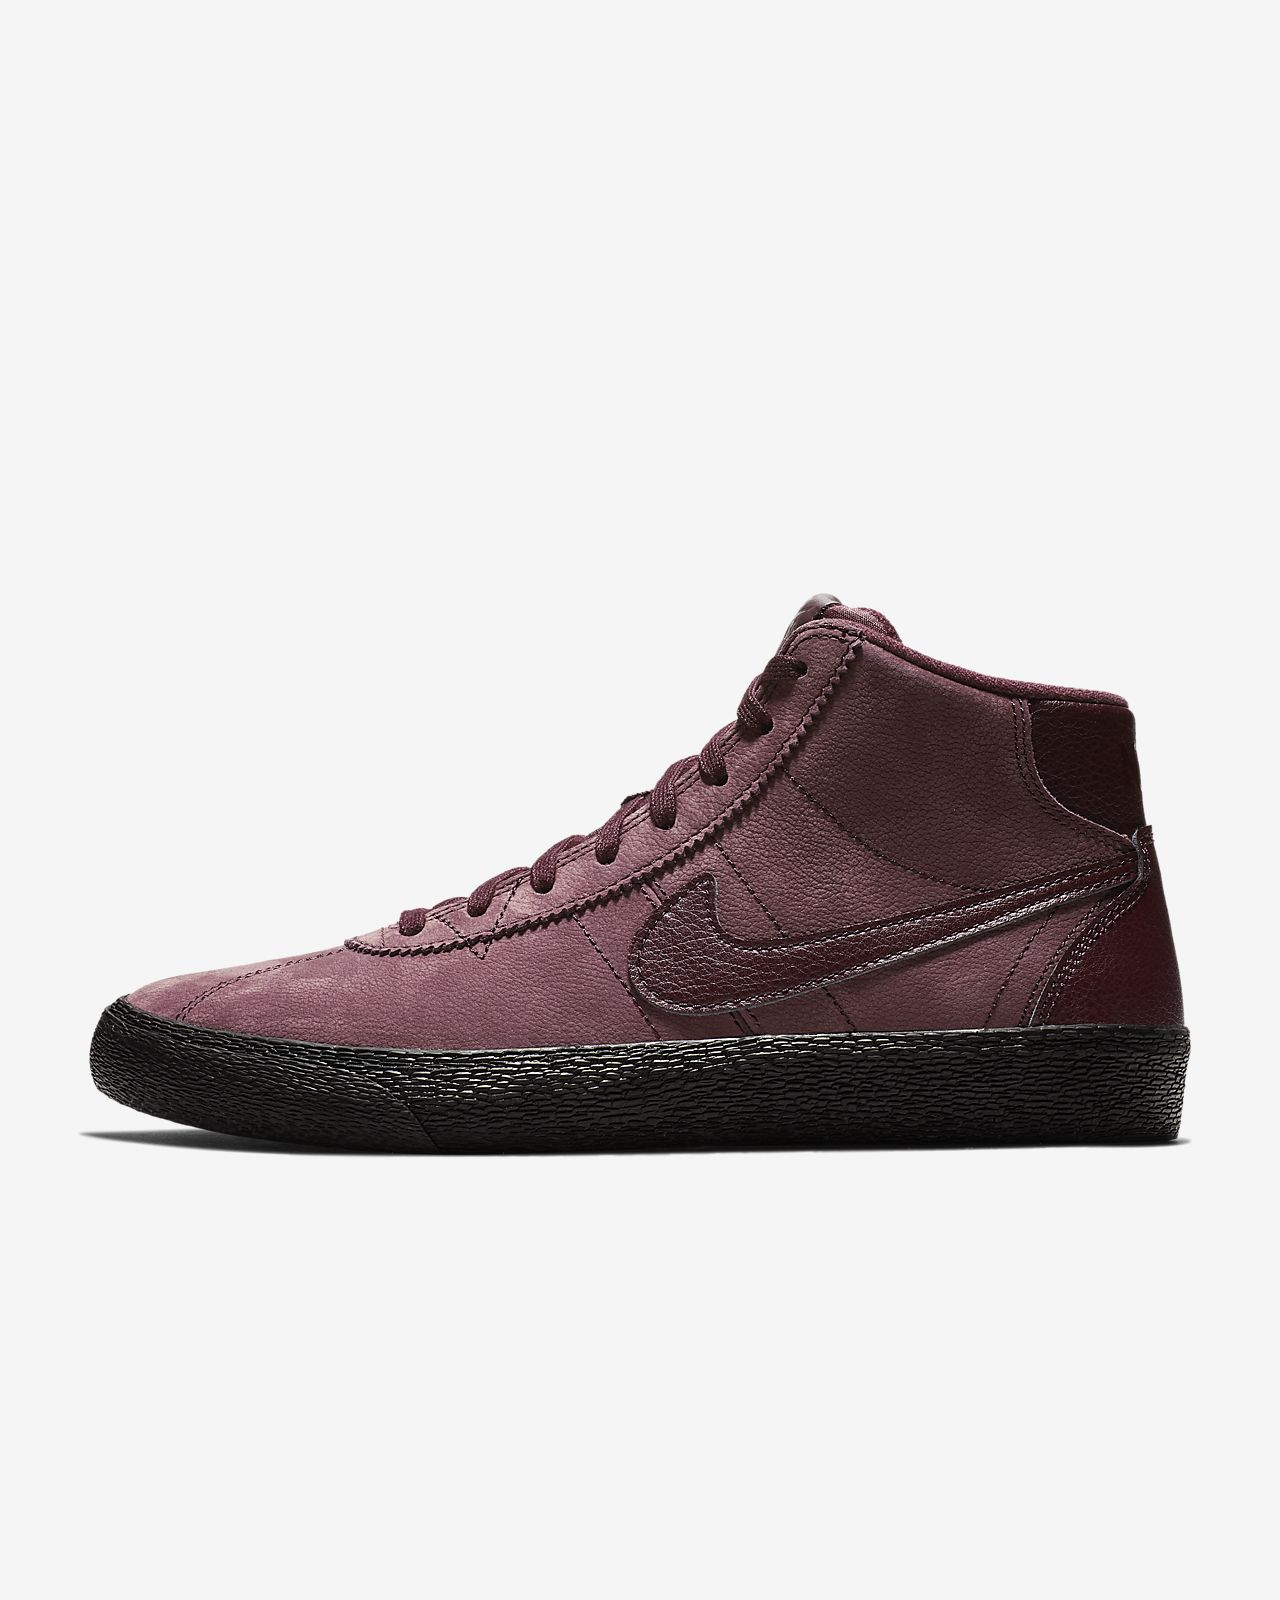 new style e2660 2007b Low Resolution Nike SB Bruin High Premium Women s Skateboarding Shoe Nike  SB Bruin High Premium Women s Skateboarding Shoe